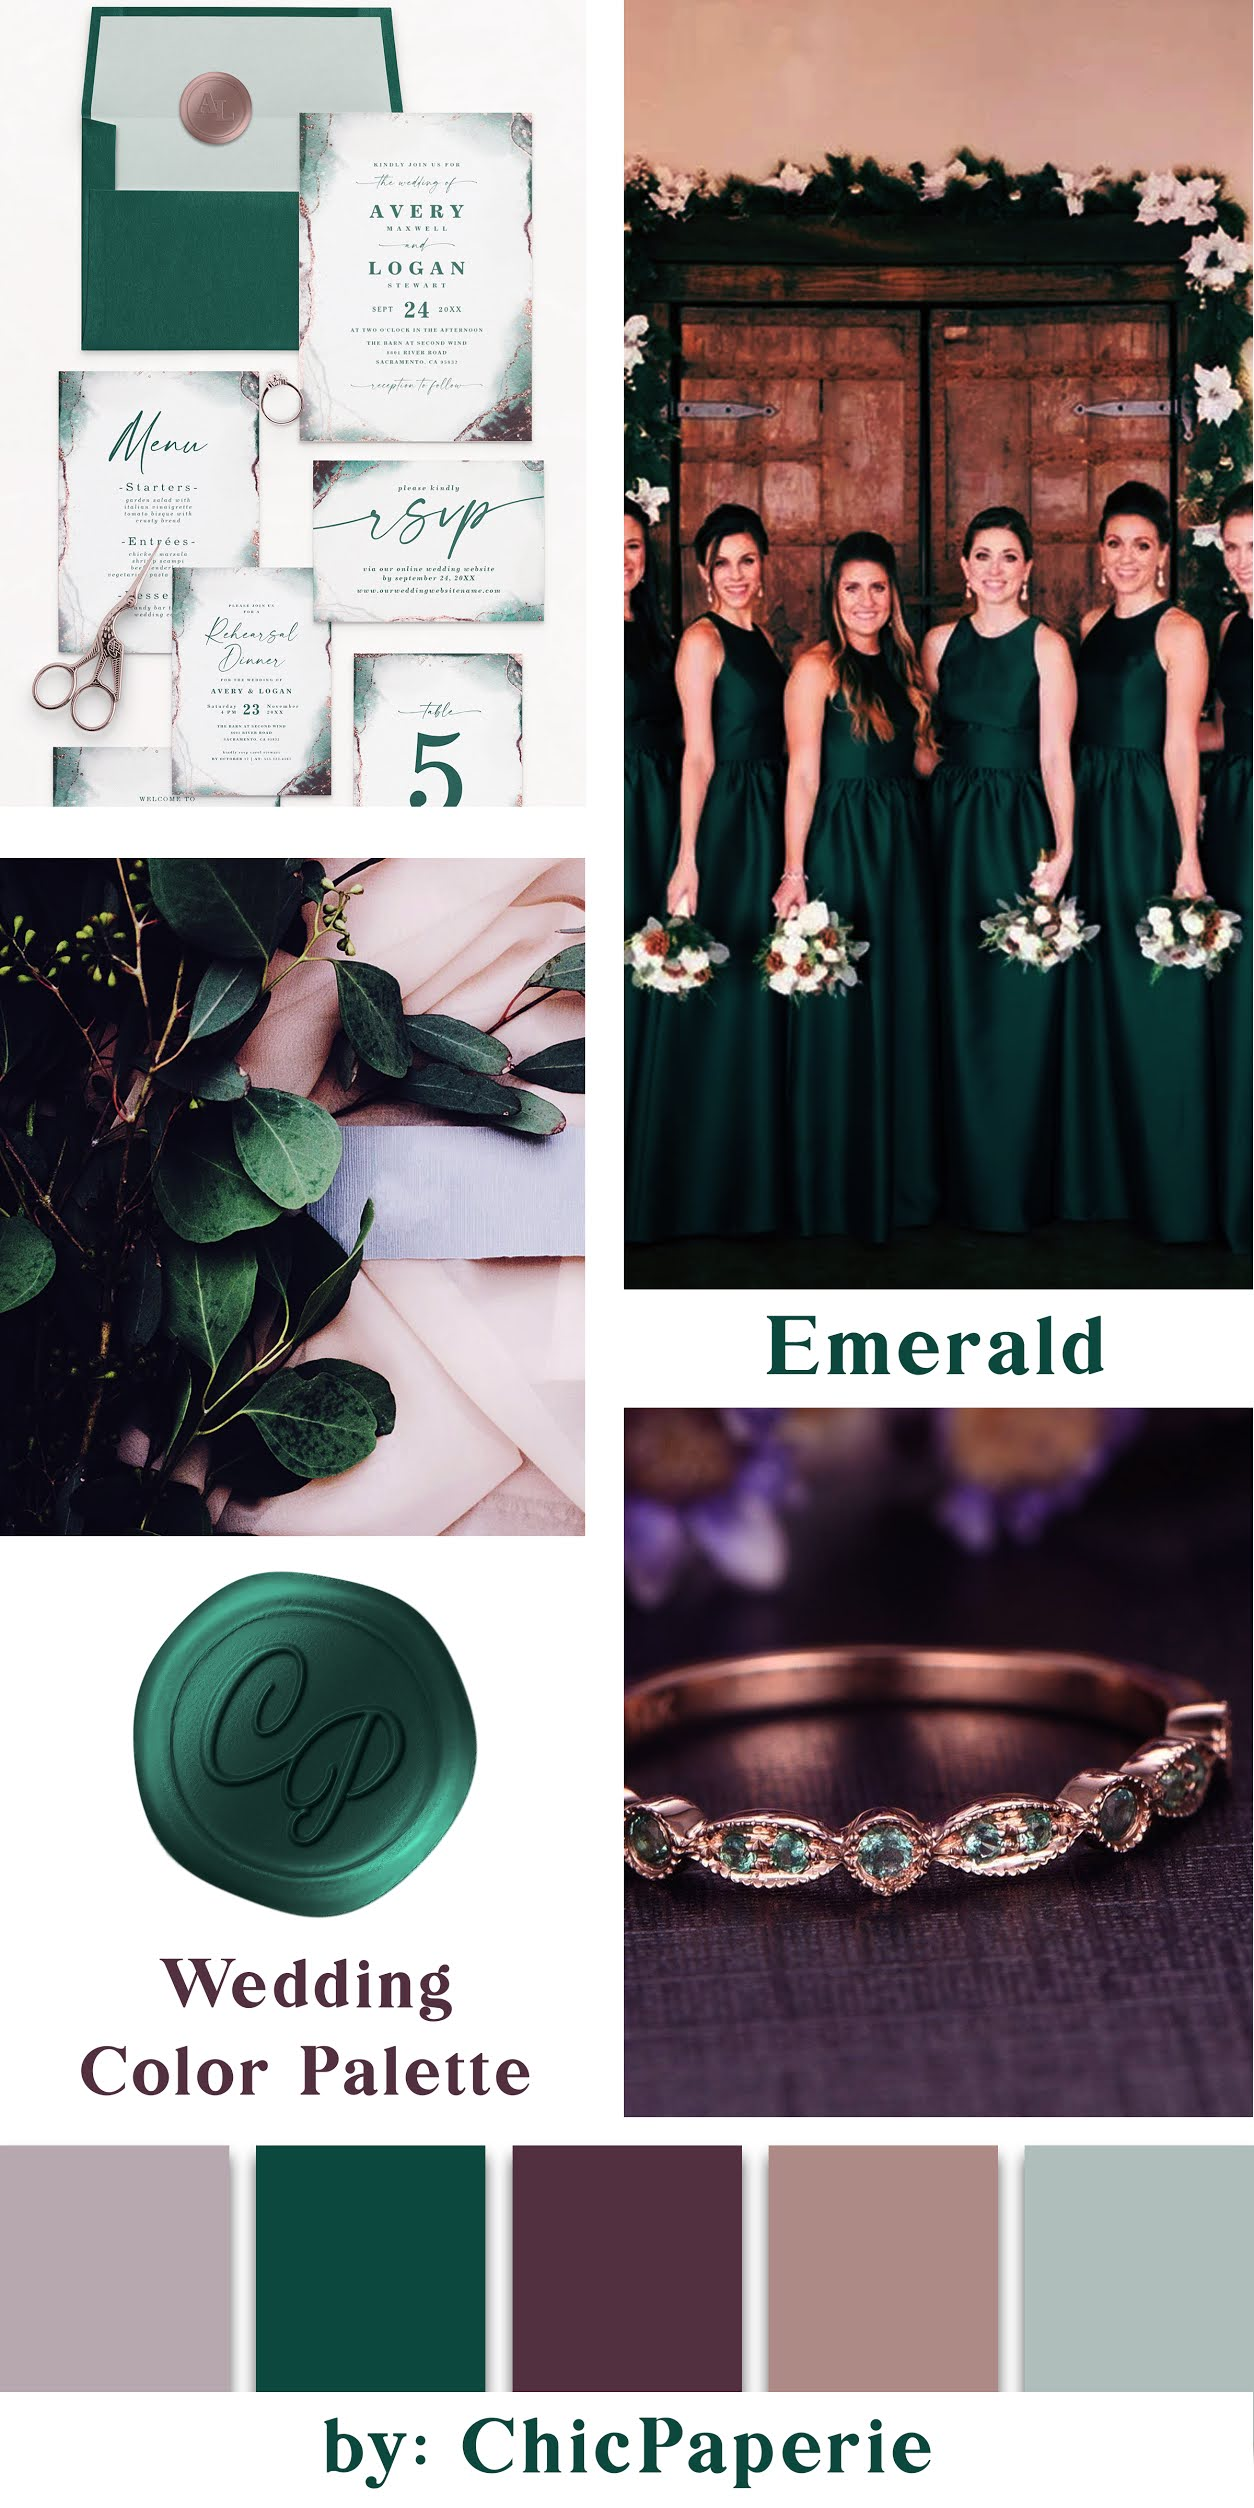 Emerald Green Wedding Color Scheme: Invitations Suite, Bridesmaid Gowns, Foliage with Envelopes, and Jeweled Bracelet